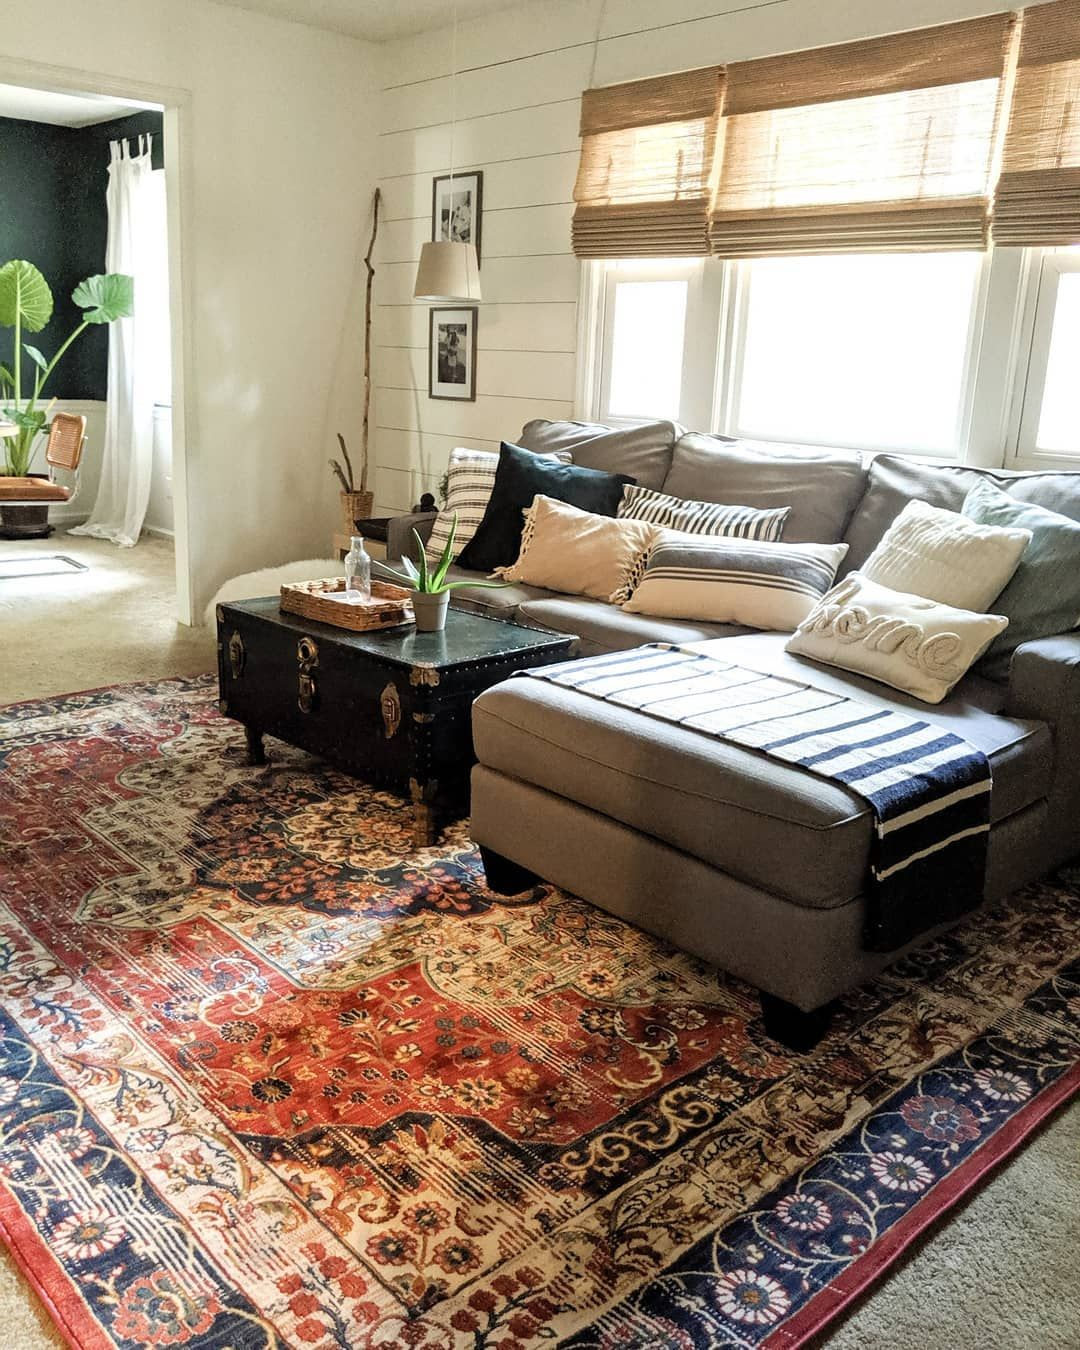 Boho Chic Living Room With Trunk Coffee Table And Well Woven Rug